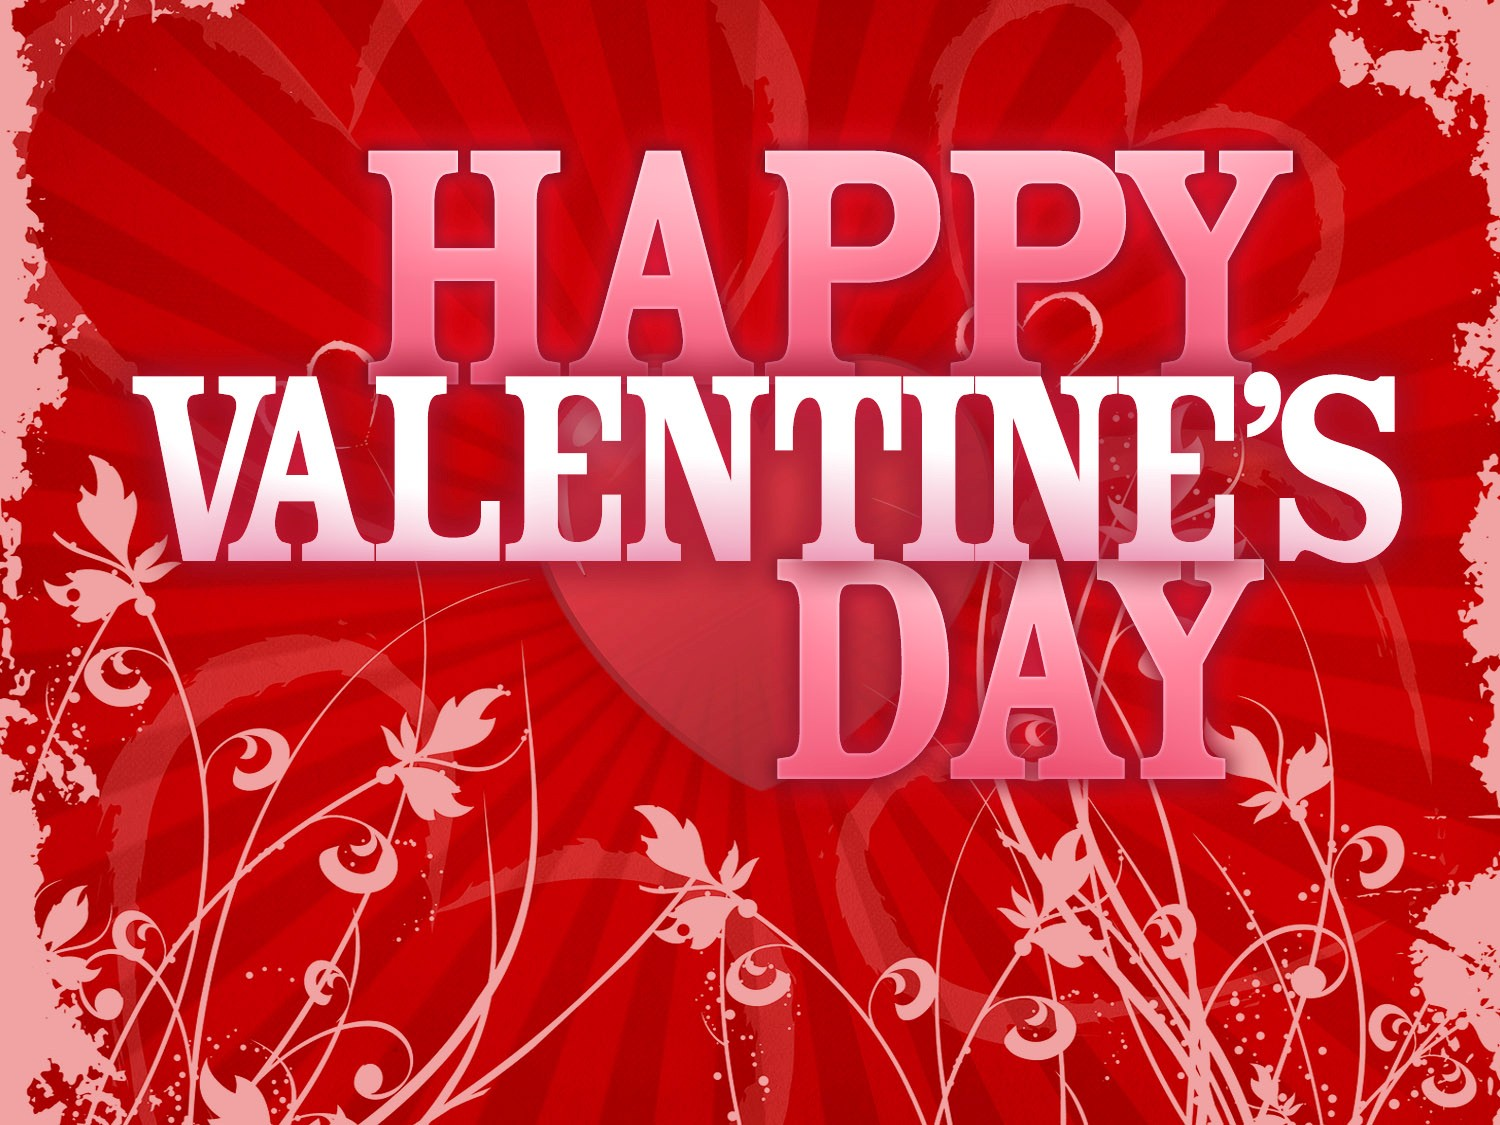 Valentines Day: Heart N Love Valentines Day HD Wallpapers 2013